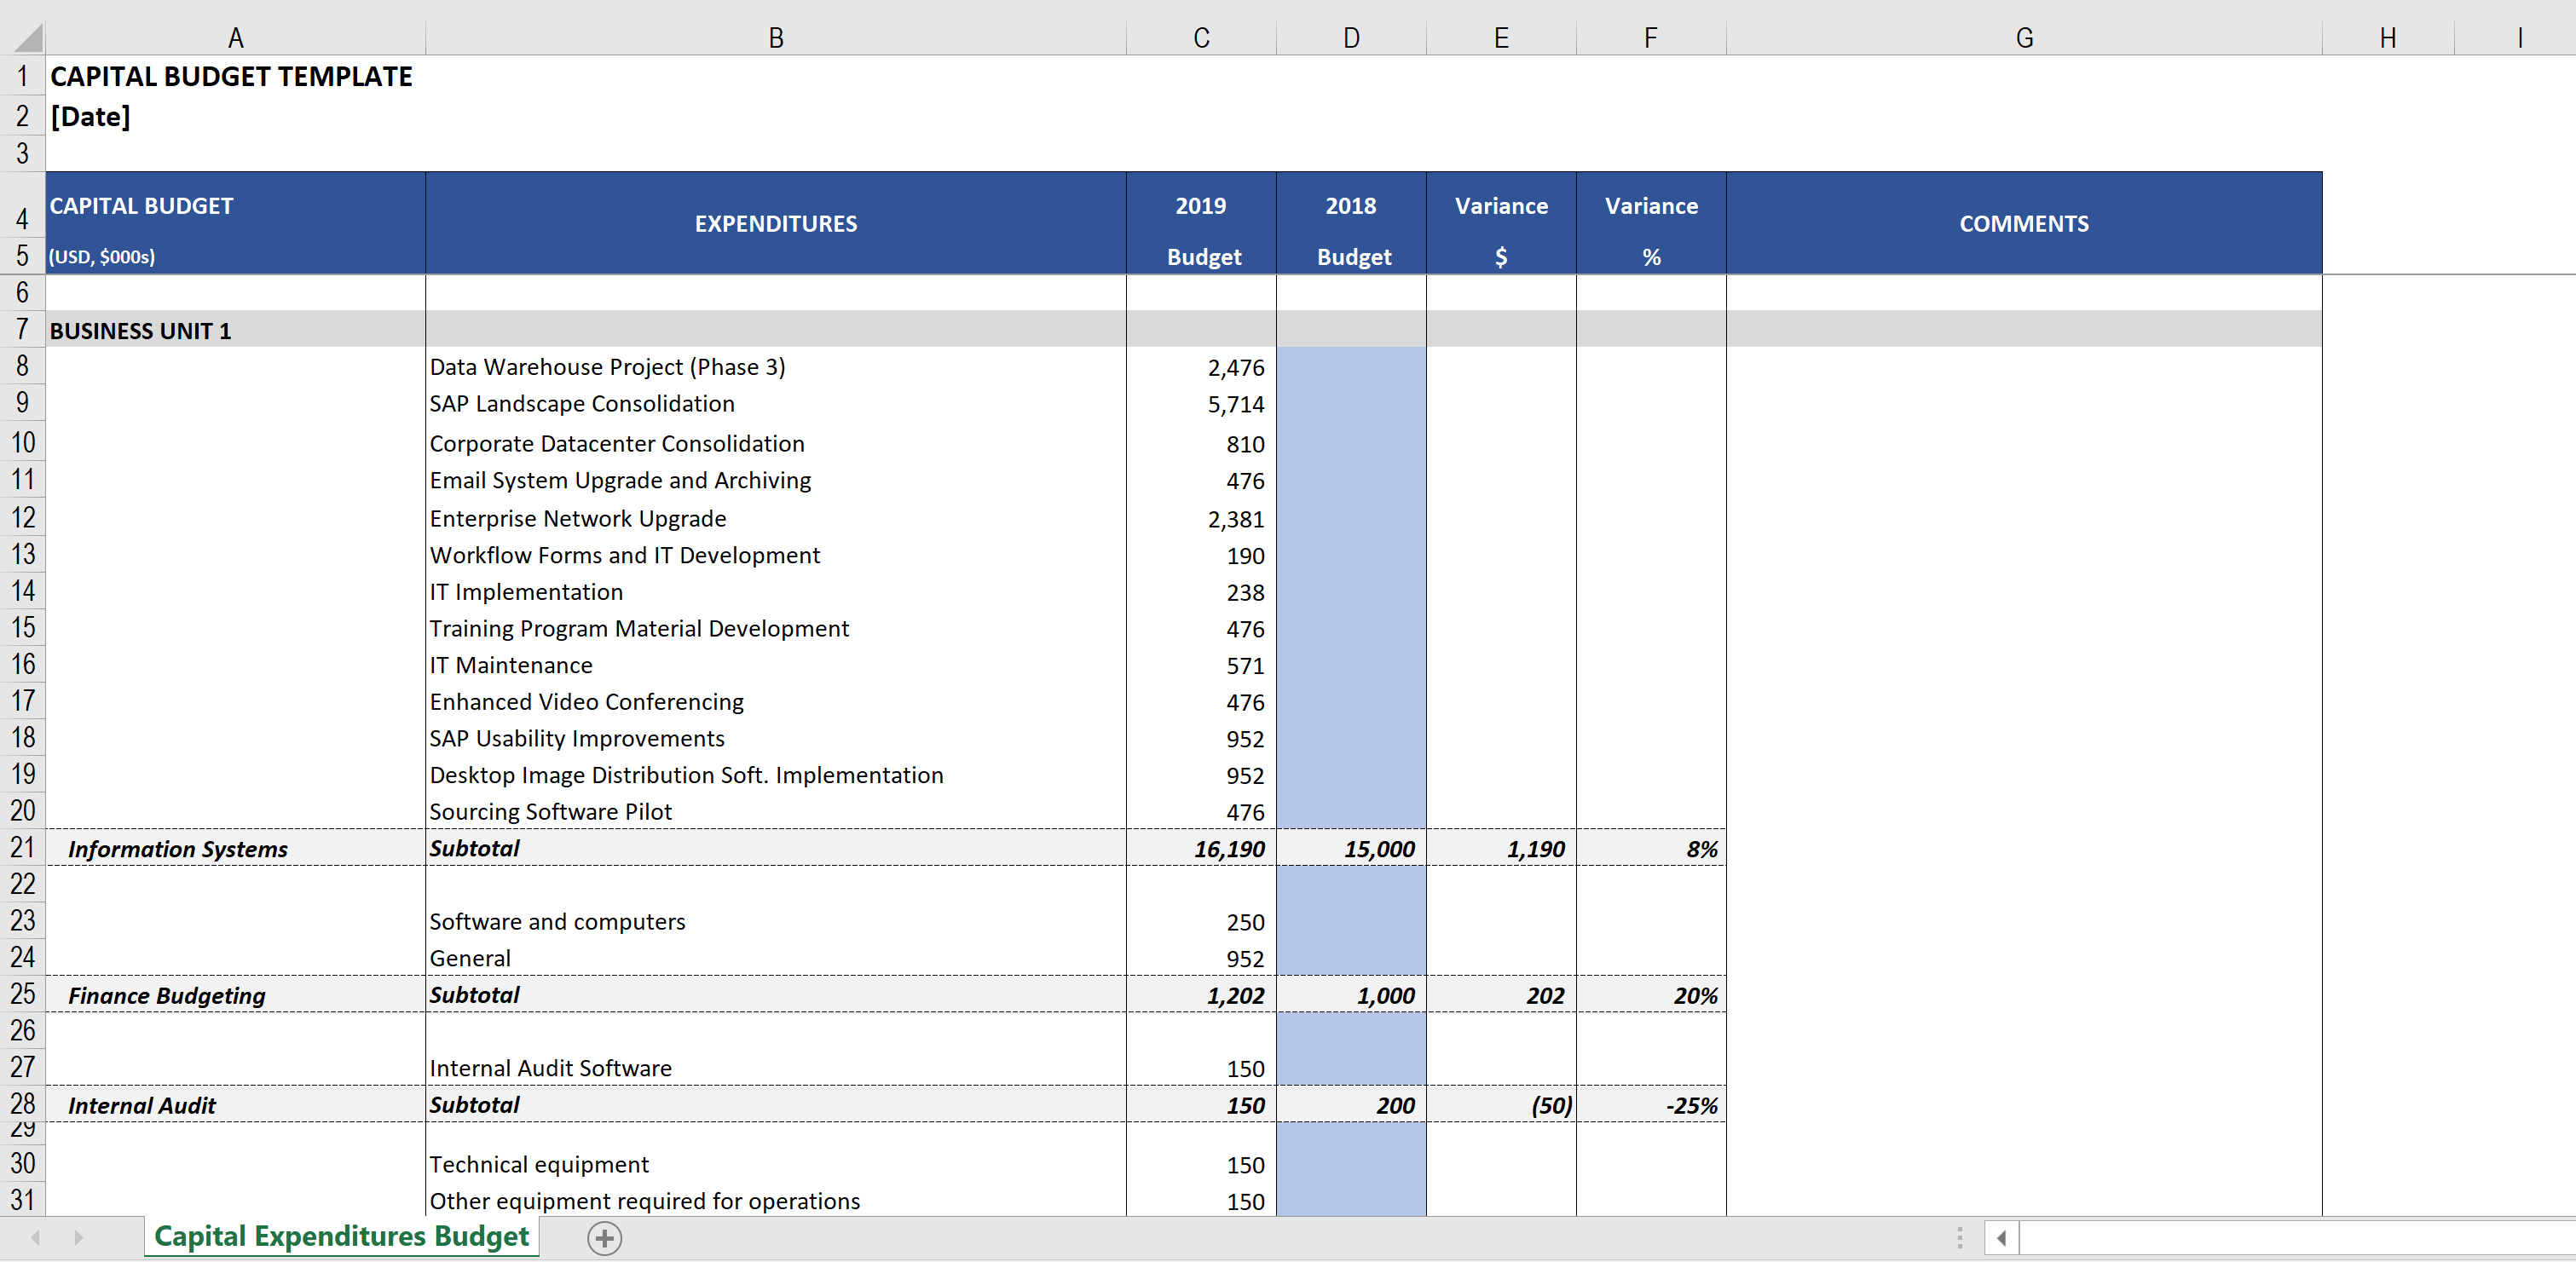 opex budget template  Capital Expenditures Budget Template - Free Excel Download - opex budget template